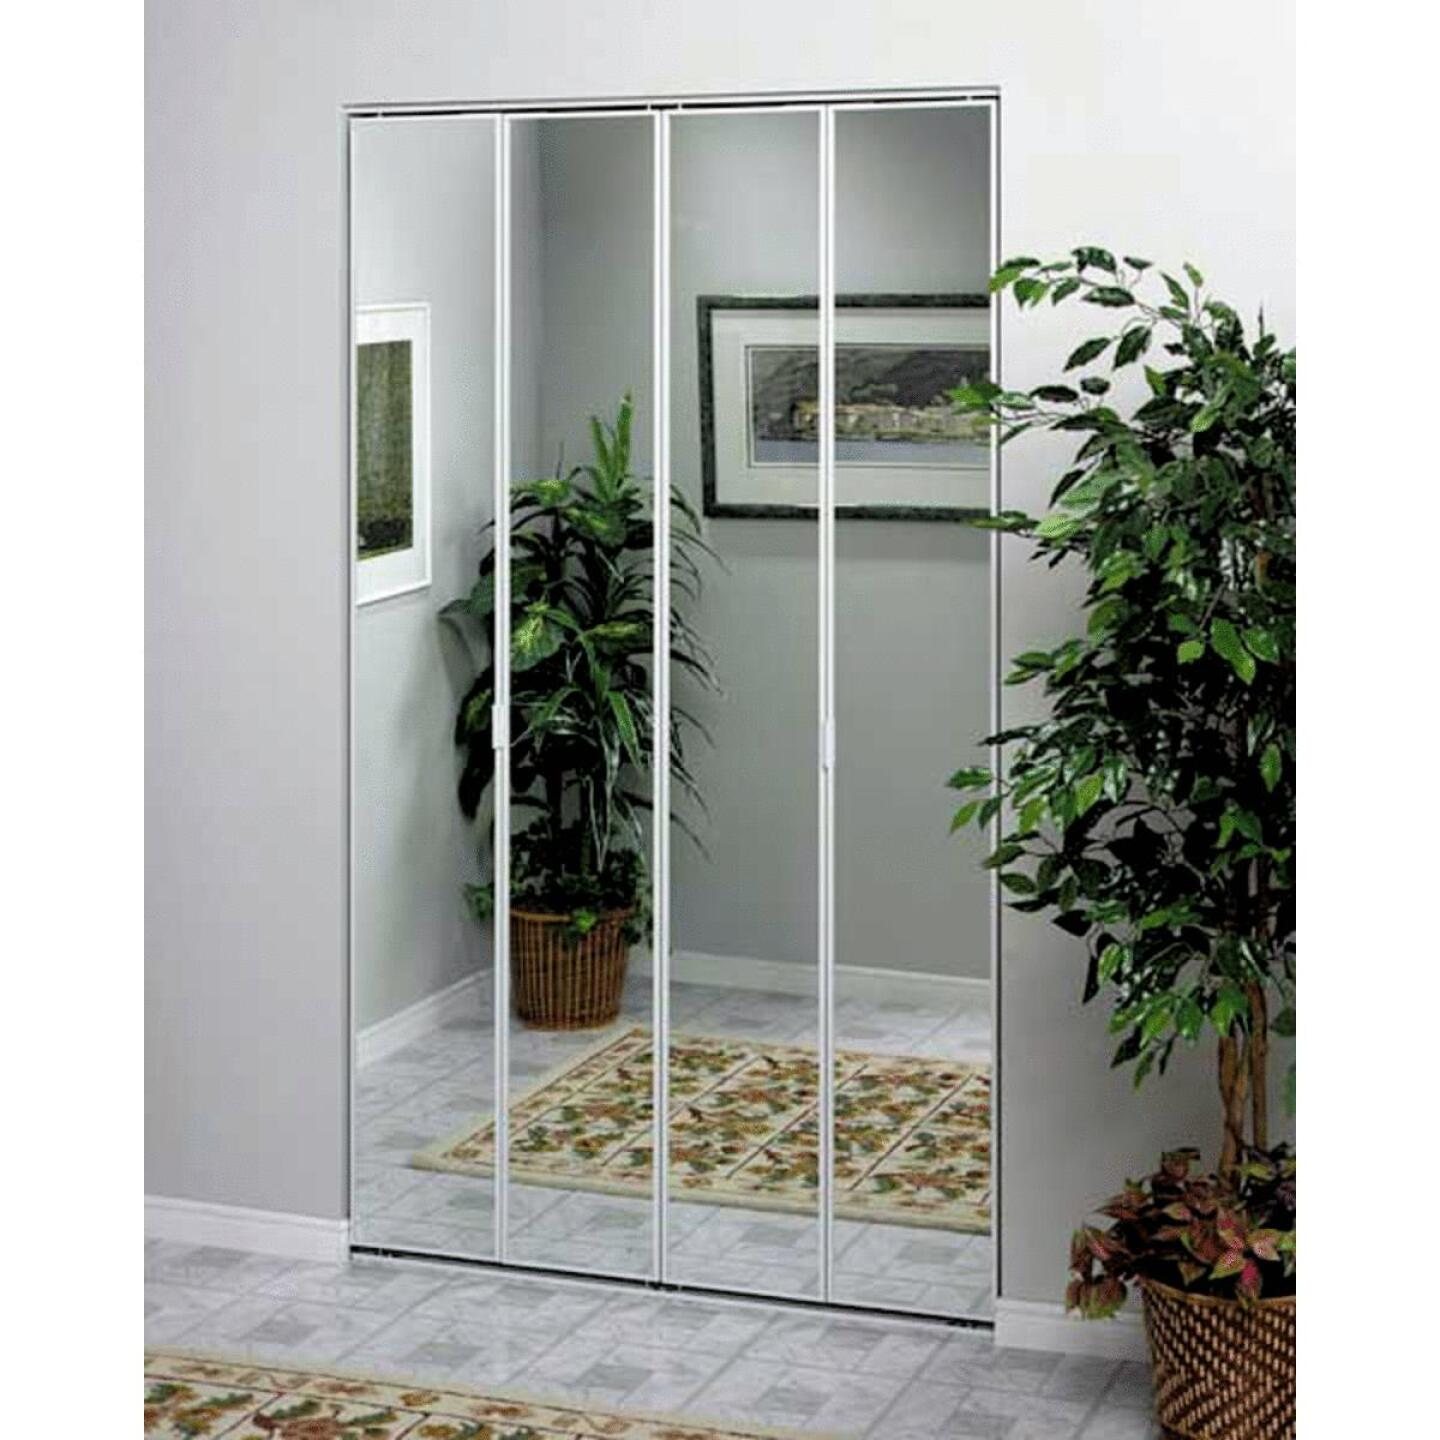 Erias Series 4400 36 In. W. x 80-1/2 In. H. Steel Frame Mirrored White Bifold Door Image 1